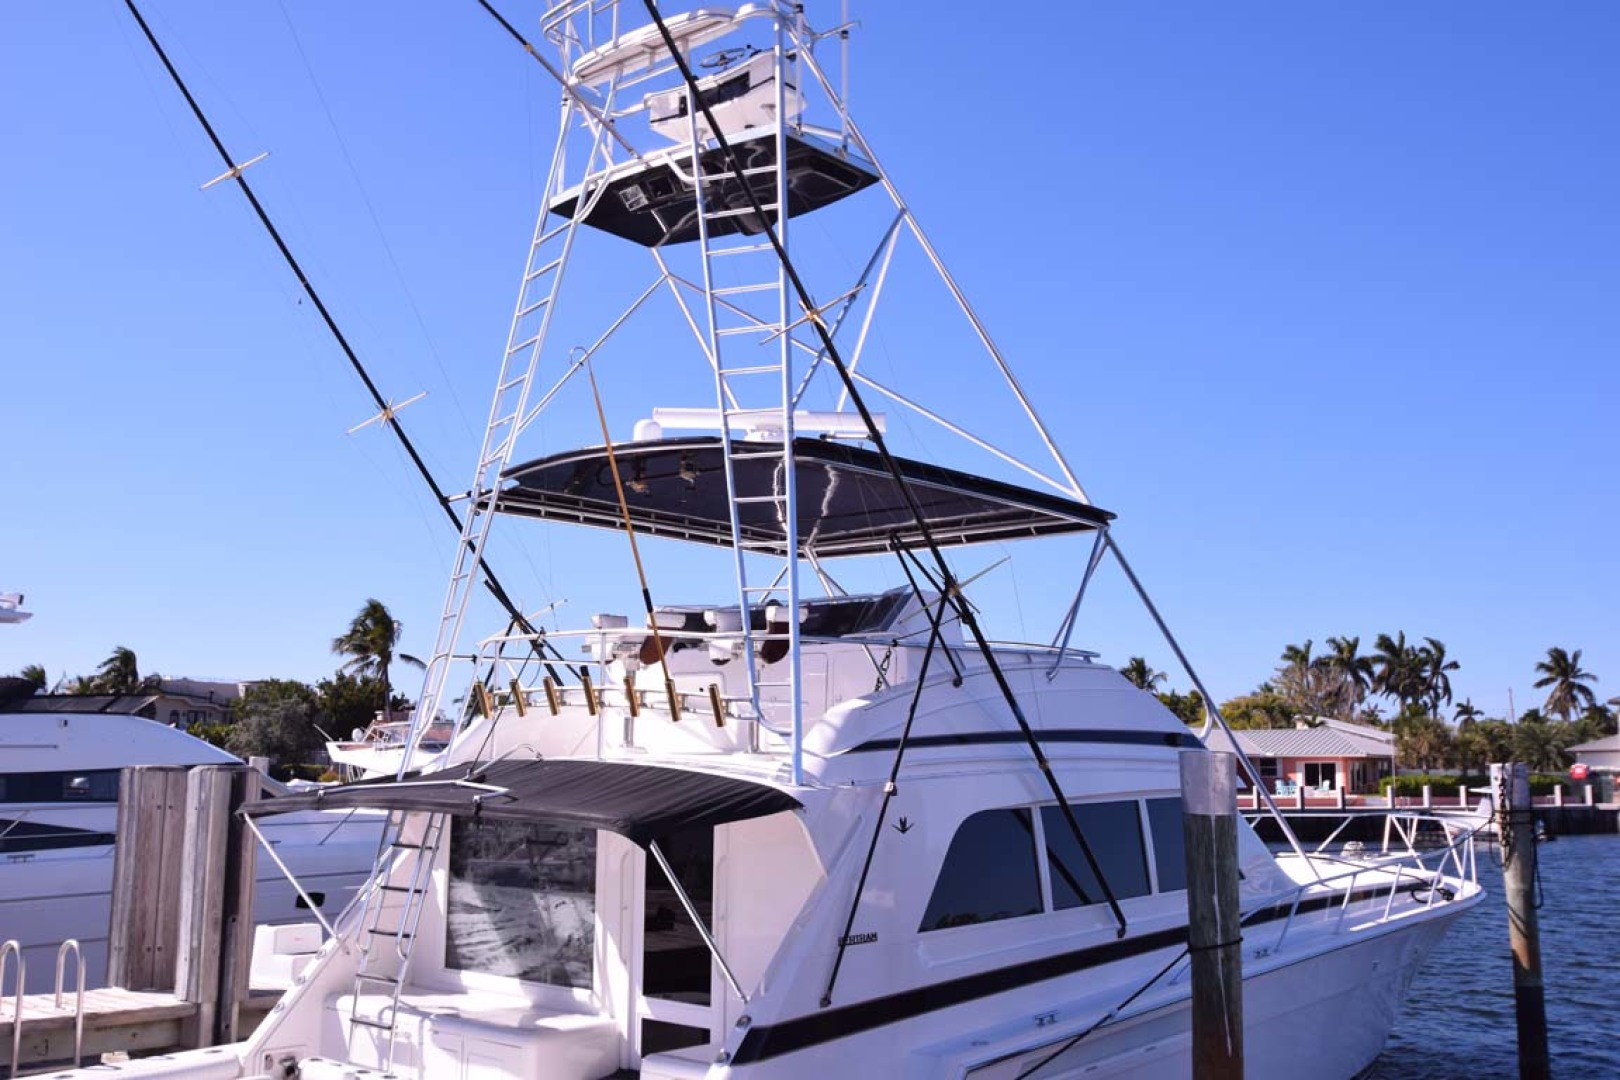 Bertram-60 Convertible 1998-CHARDAN Lighthouse Point-Florida-United States-Tuna Tower-1122642 | Thumbnail